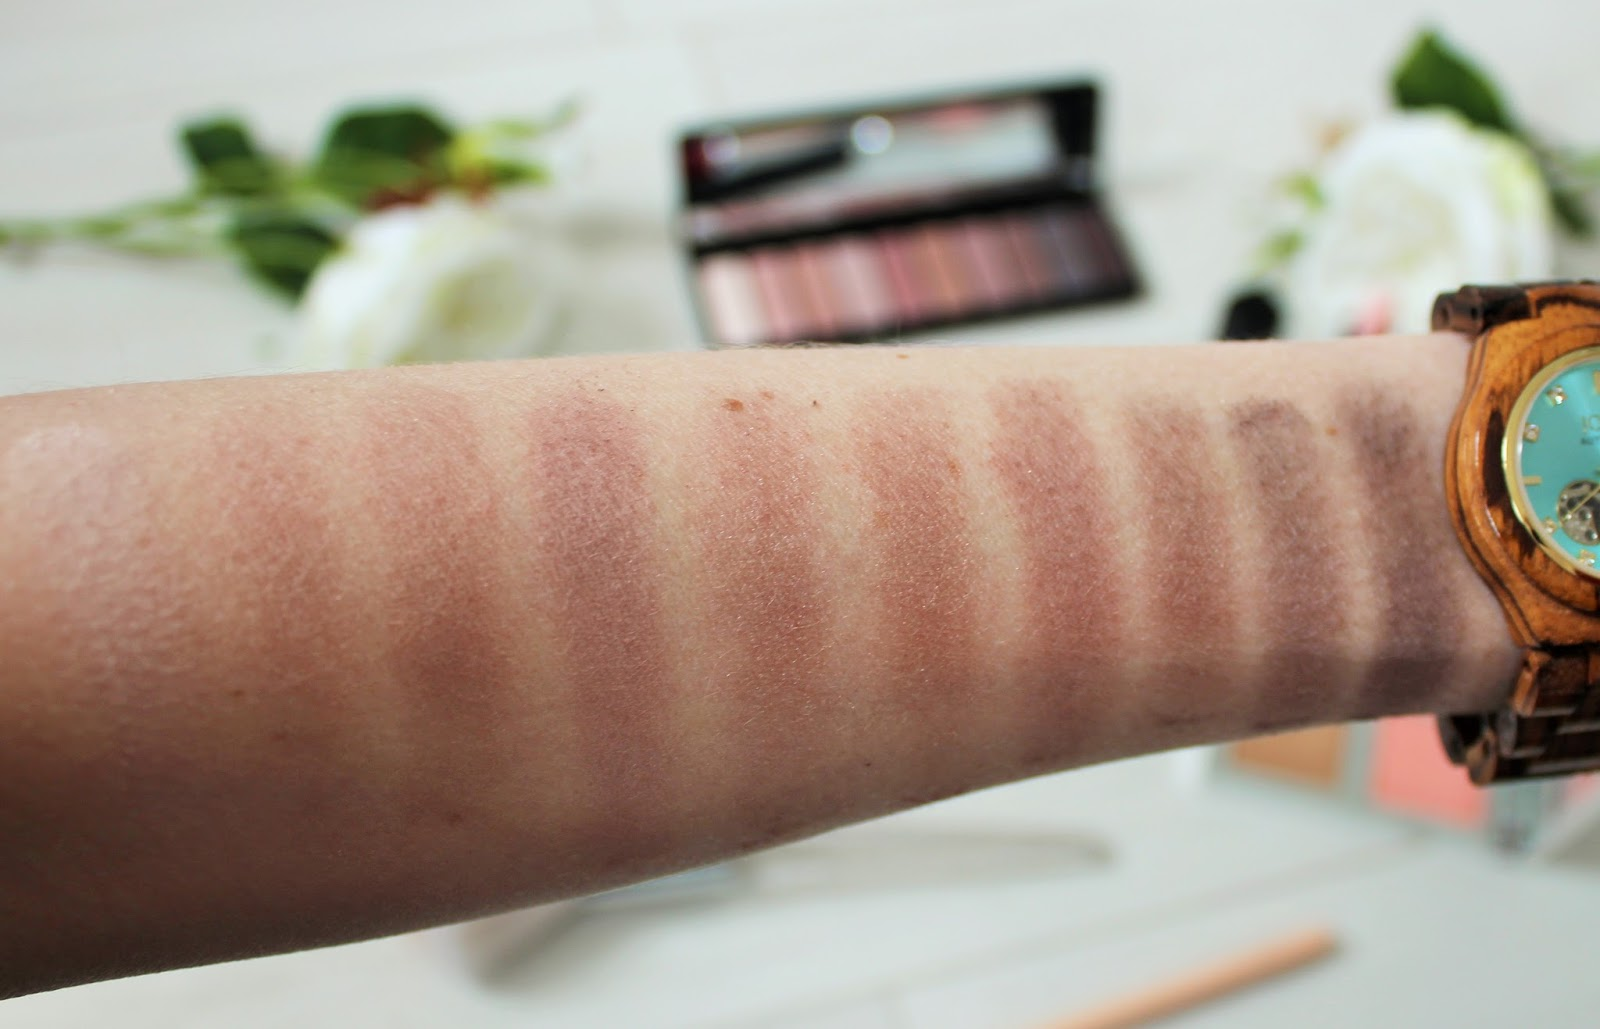 E.l.f. Cosmetics 8 - Nude Rose Gold Eyeshadow Palette